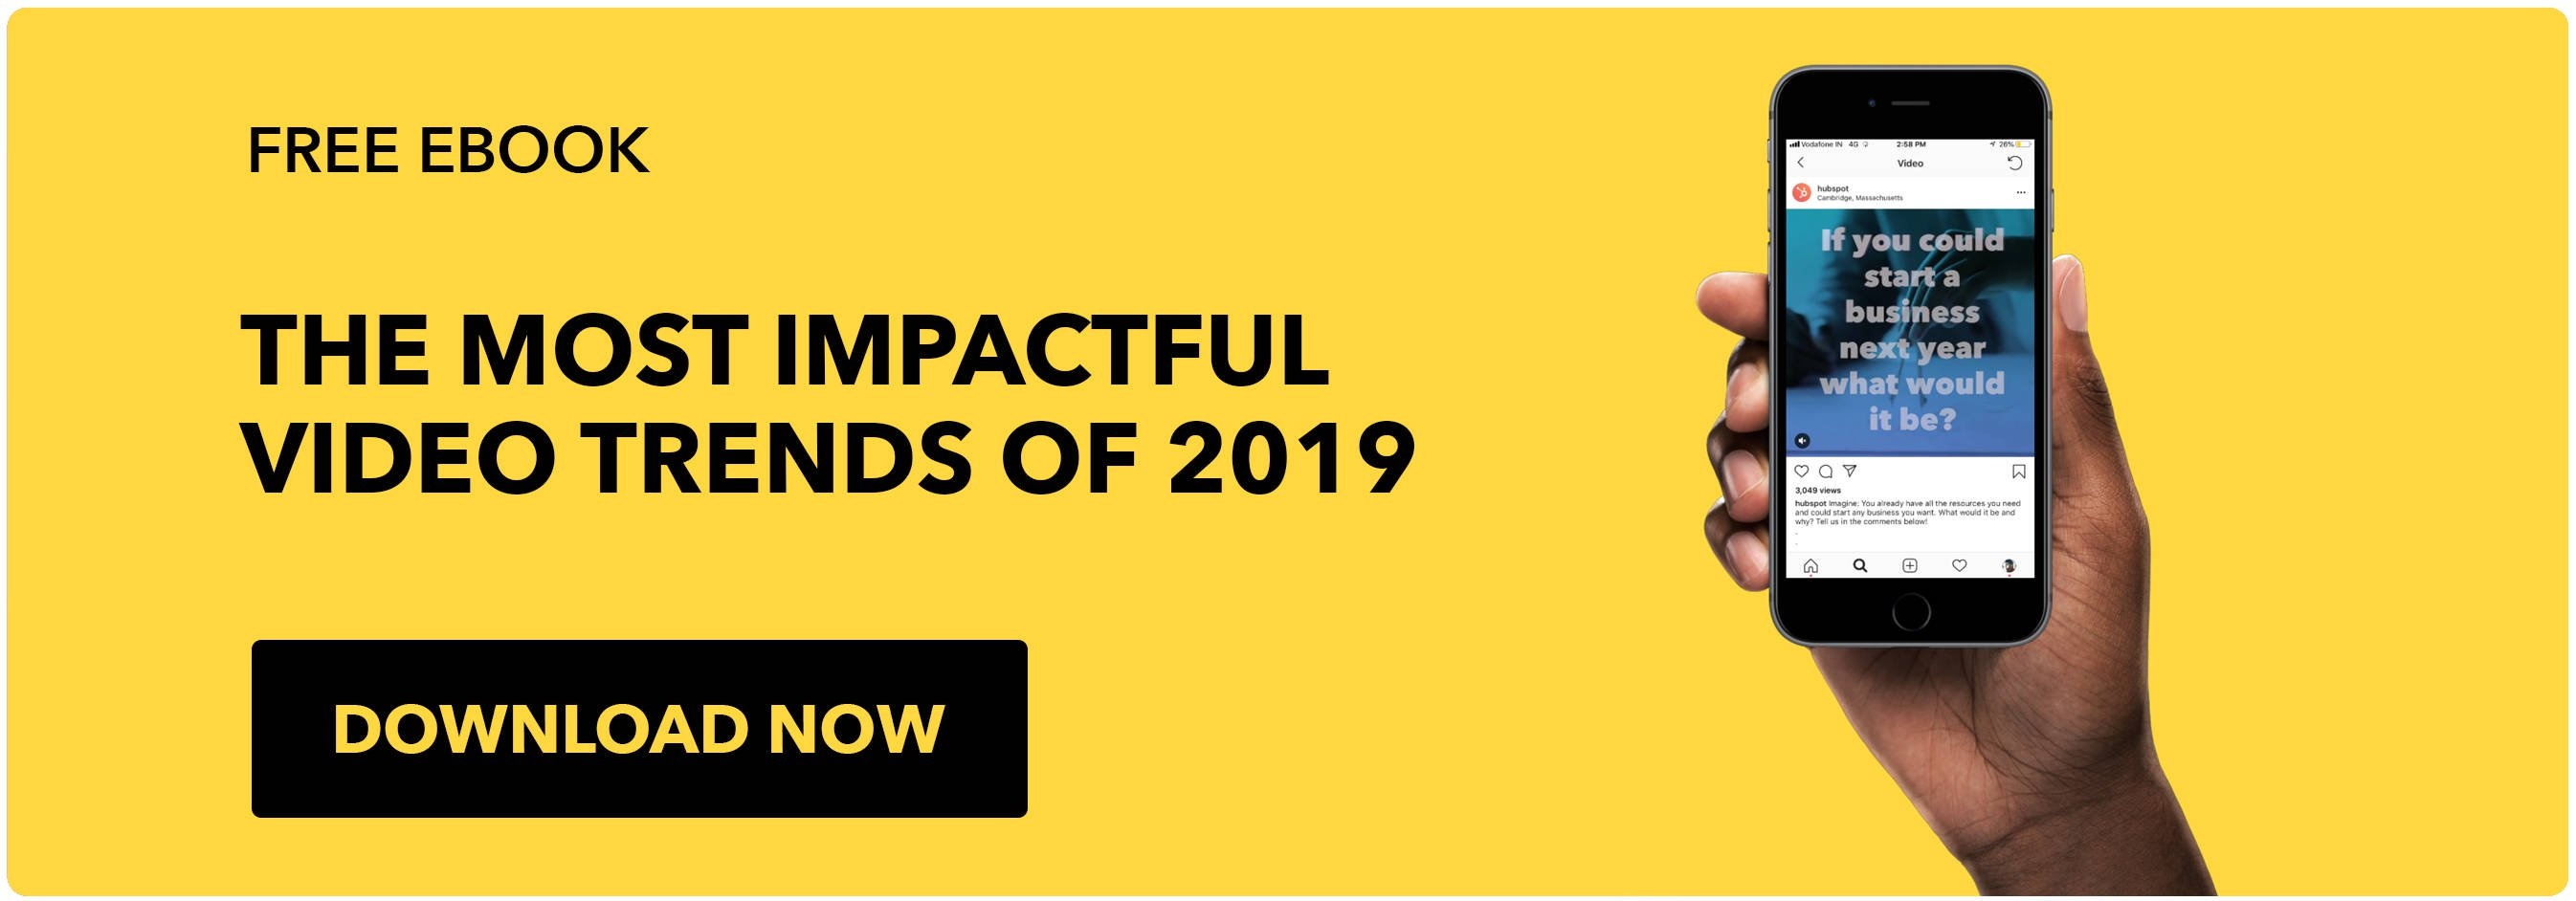 the most impactful video trends of 2019 - download free ebook